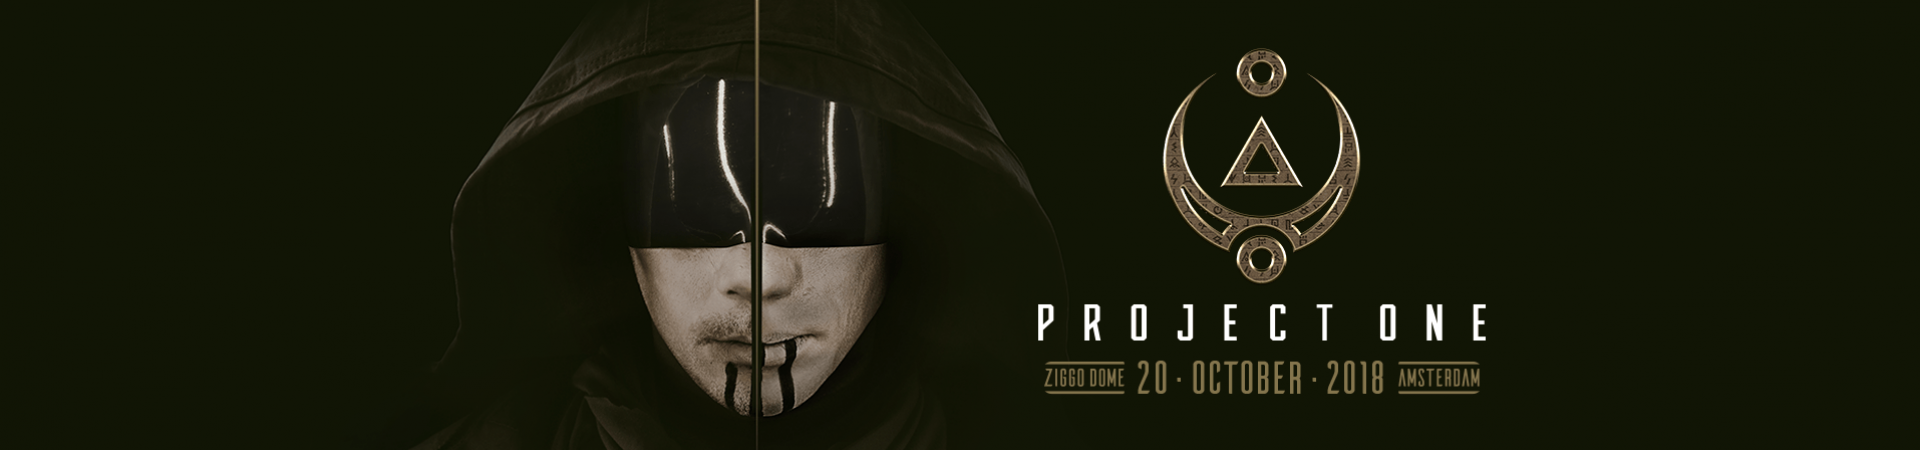 Project One header